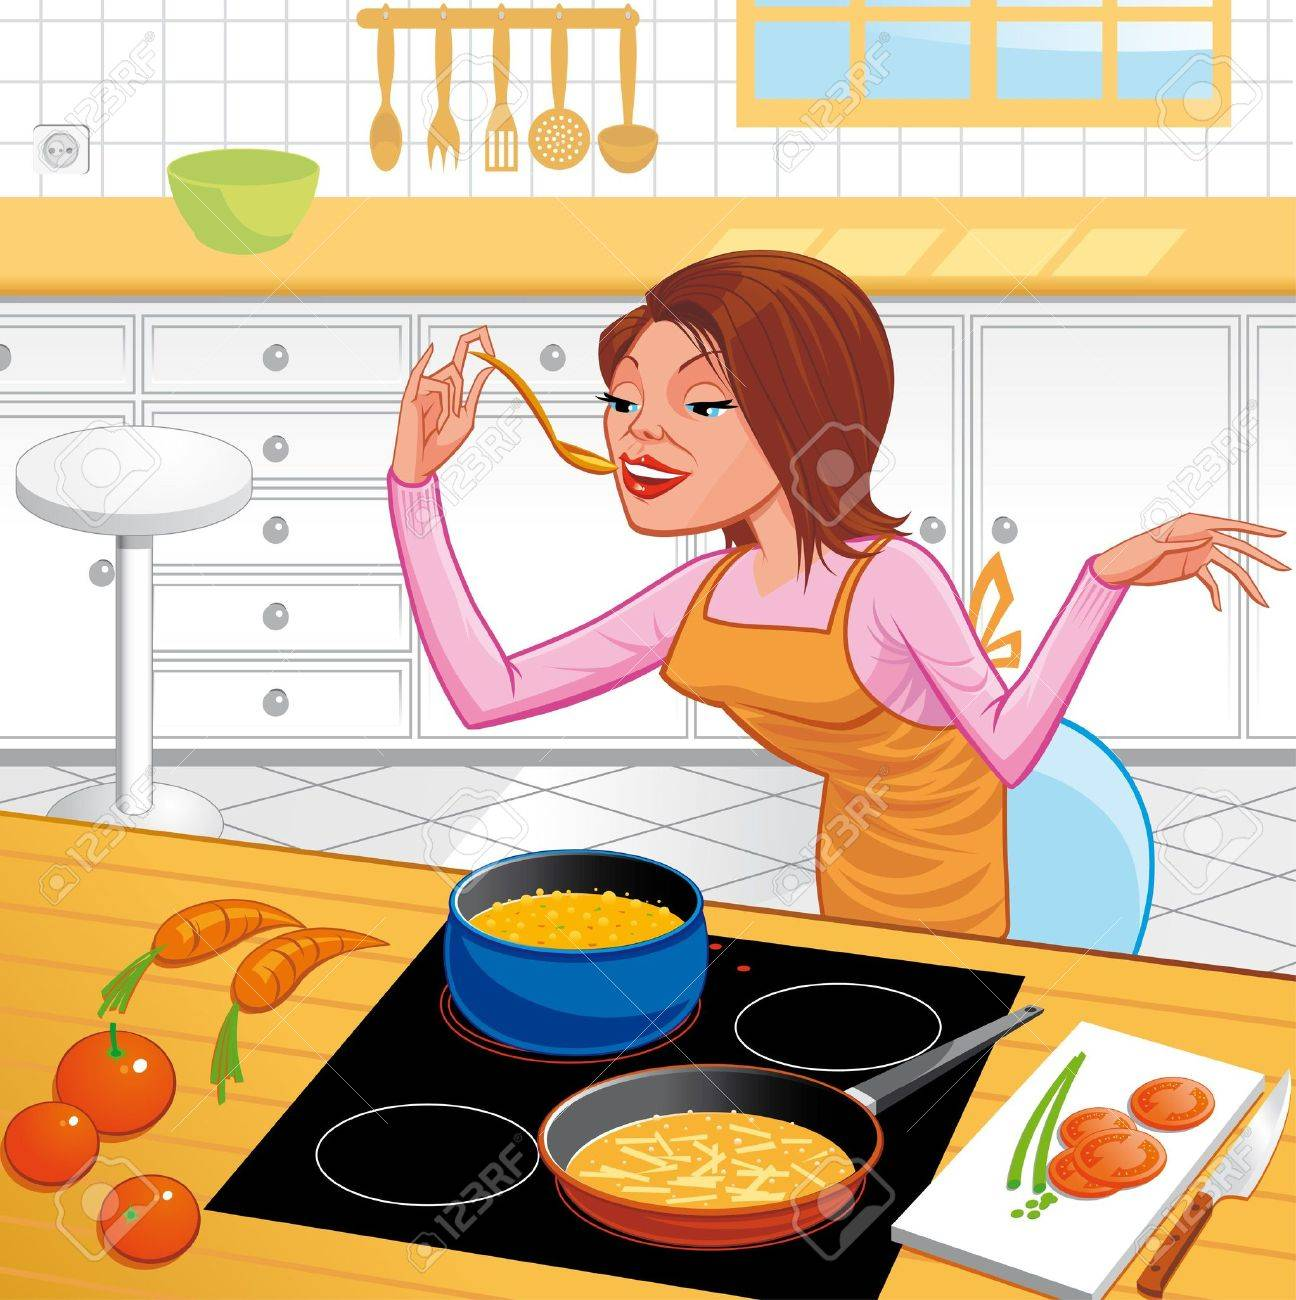 Selection of cartoons on cooking kitchens food and eating - Kitchen Cartoon Woman Cooking Stock Photo